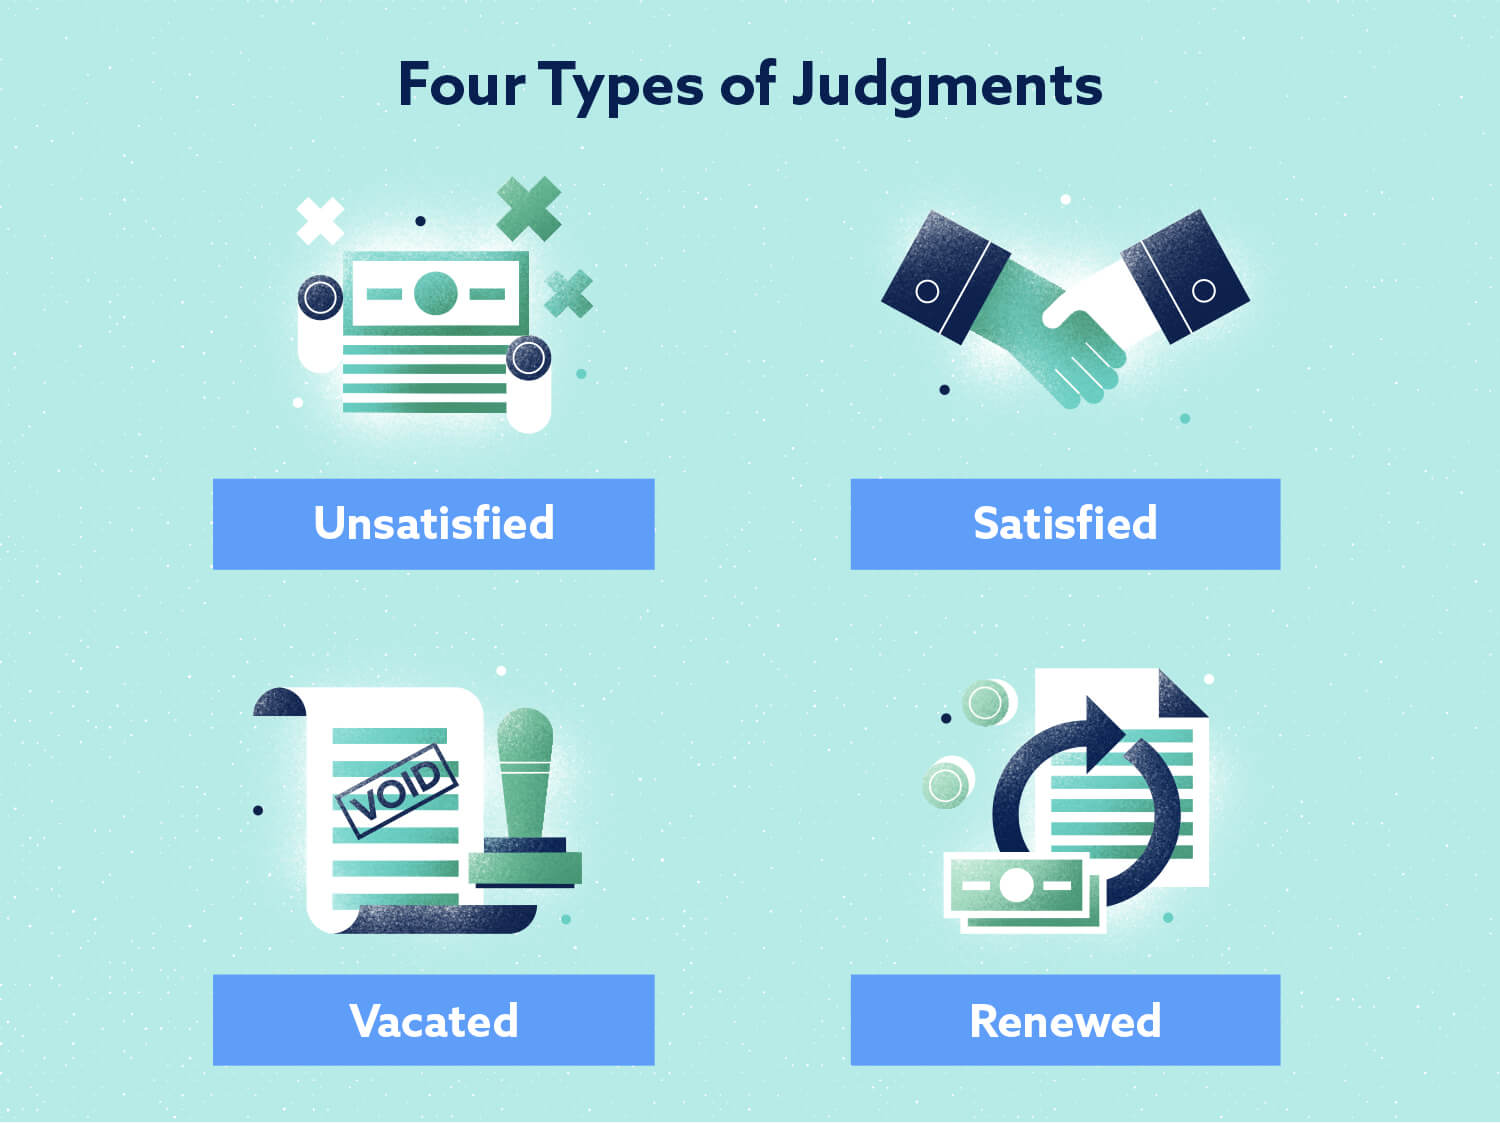 Four Types of Judgments Image